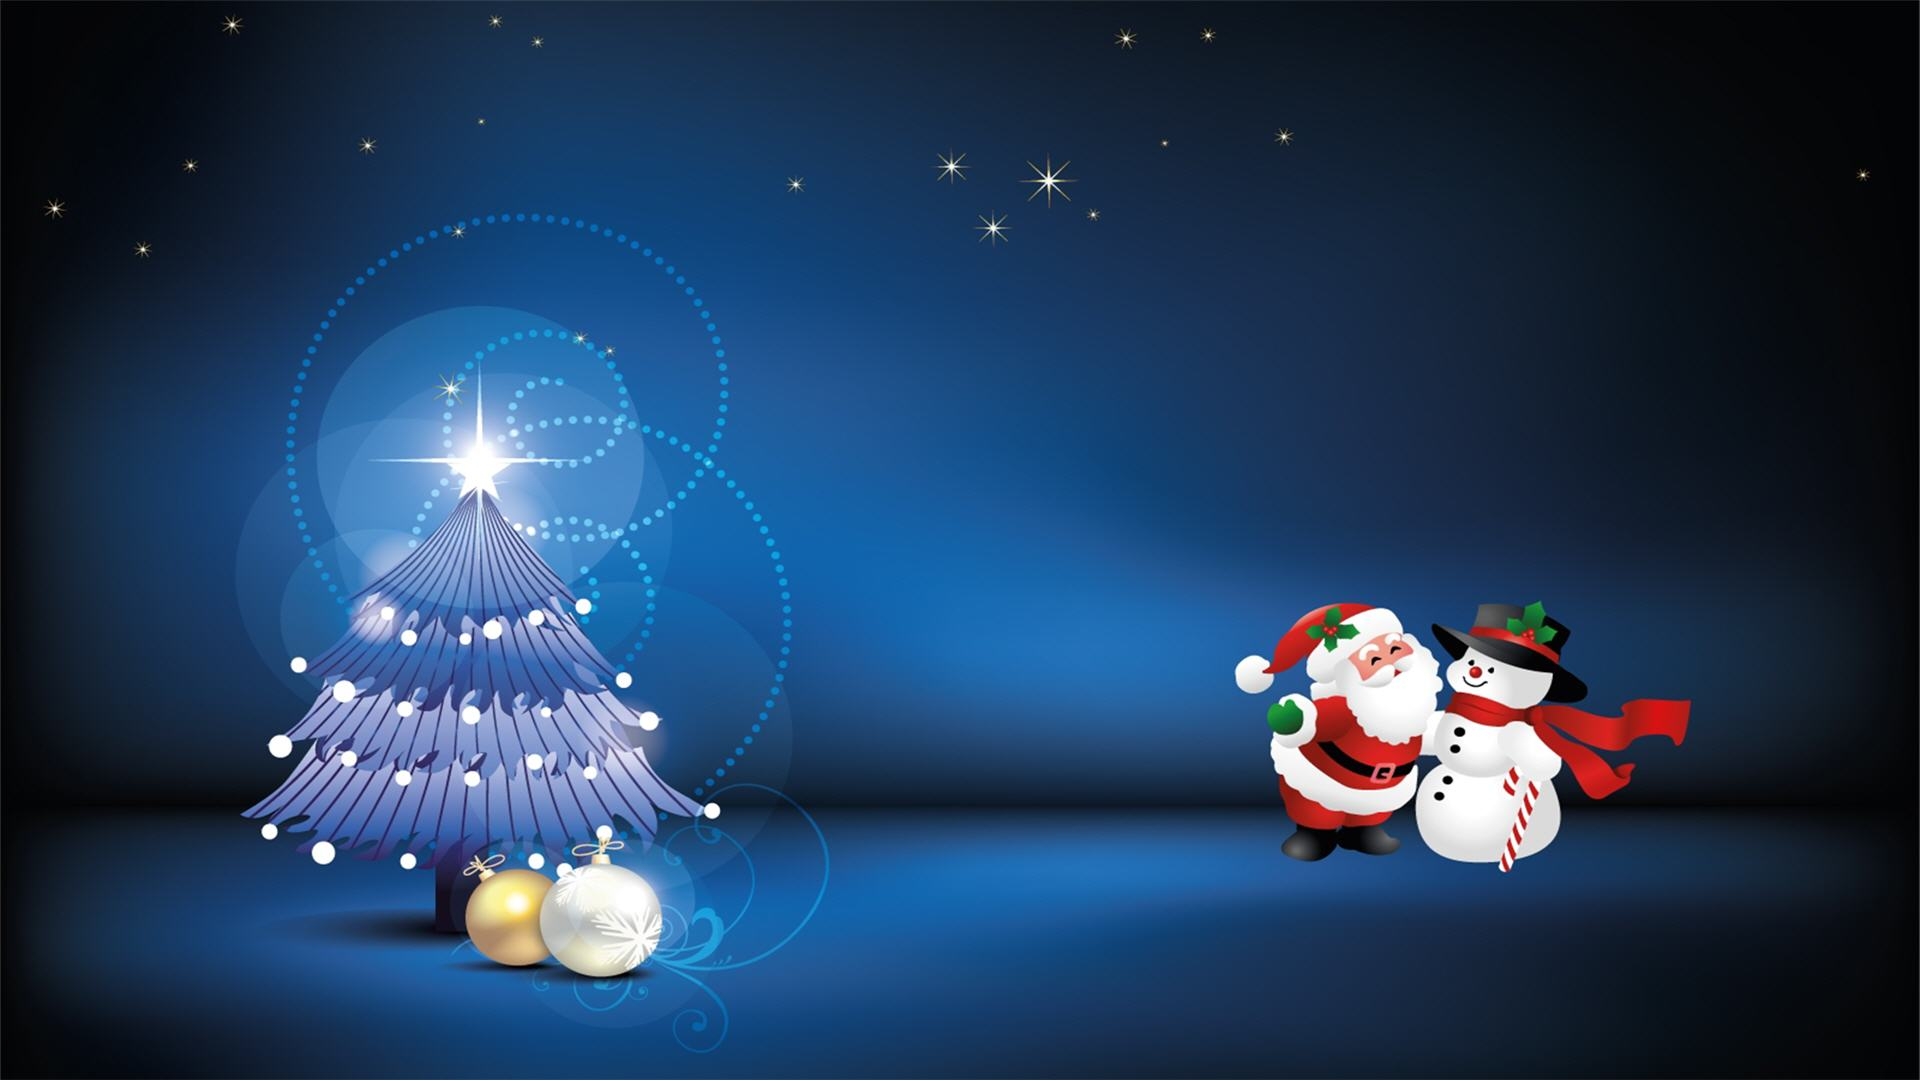 HD Christmas Wallpapers Desktop Backgrounds 2016 1920x1080